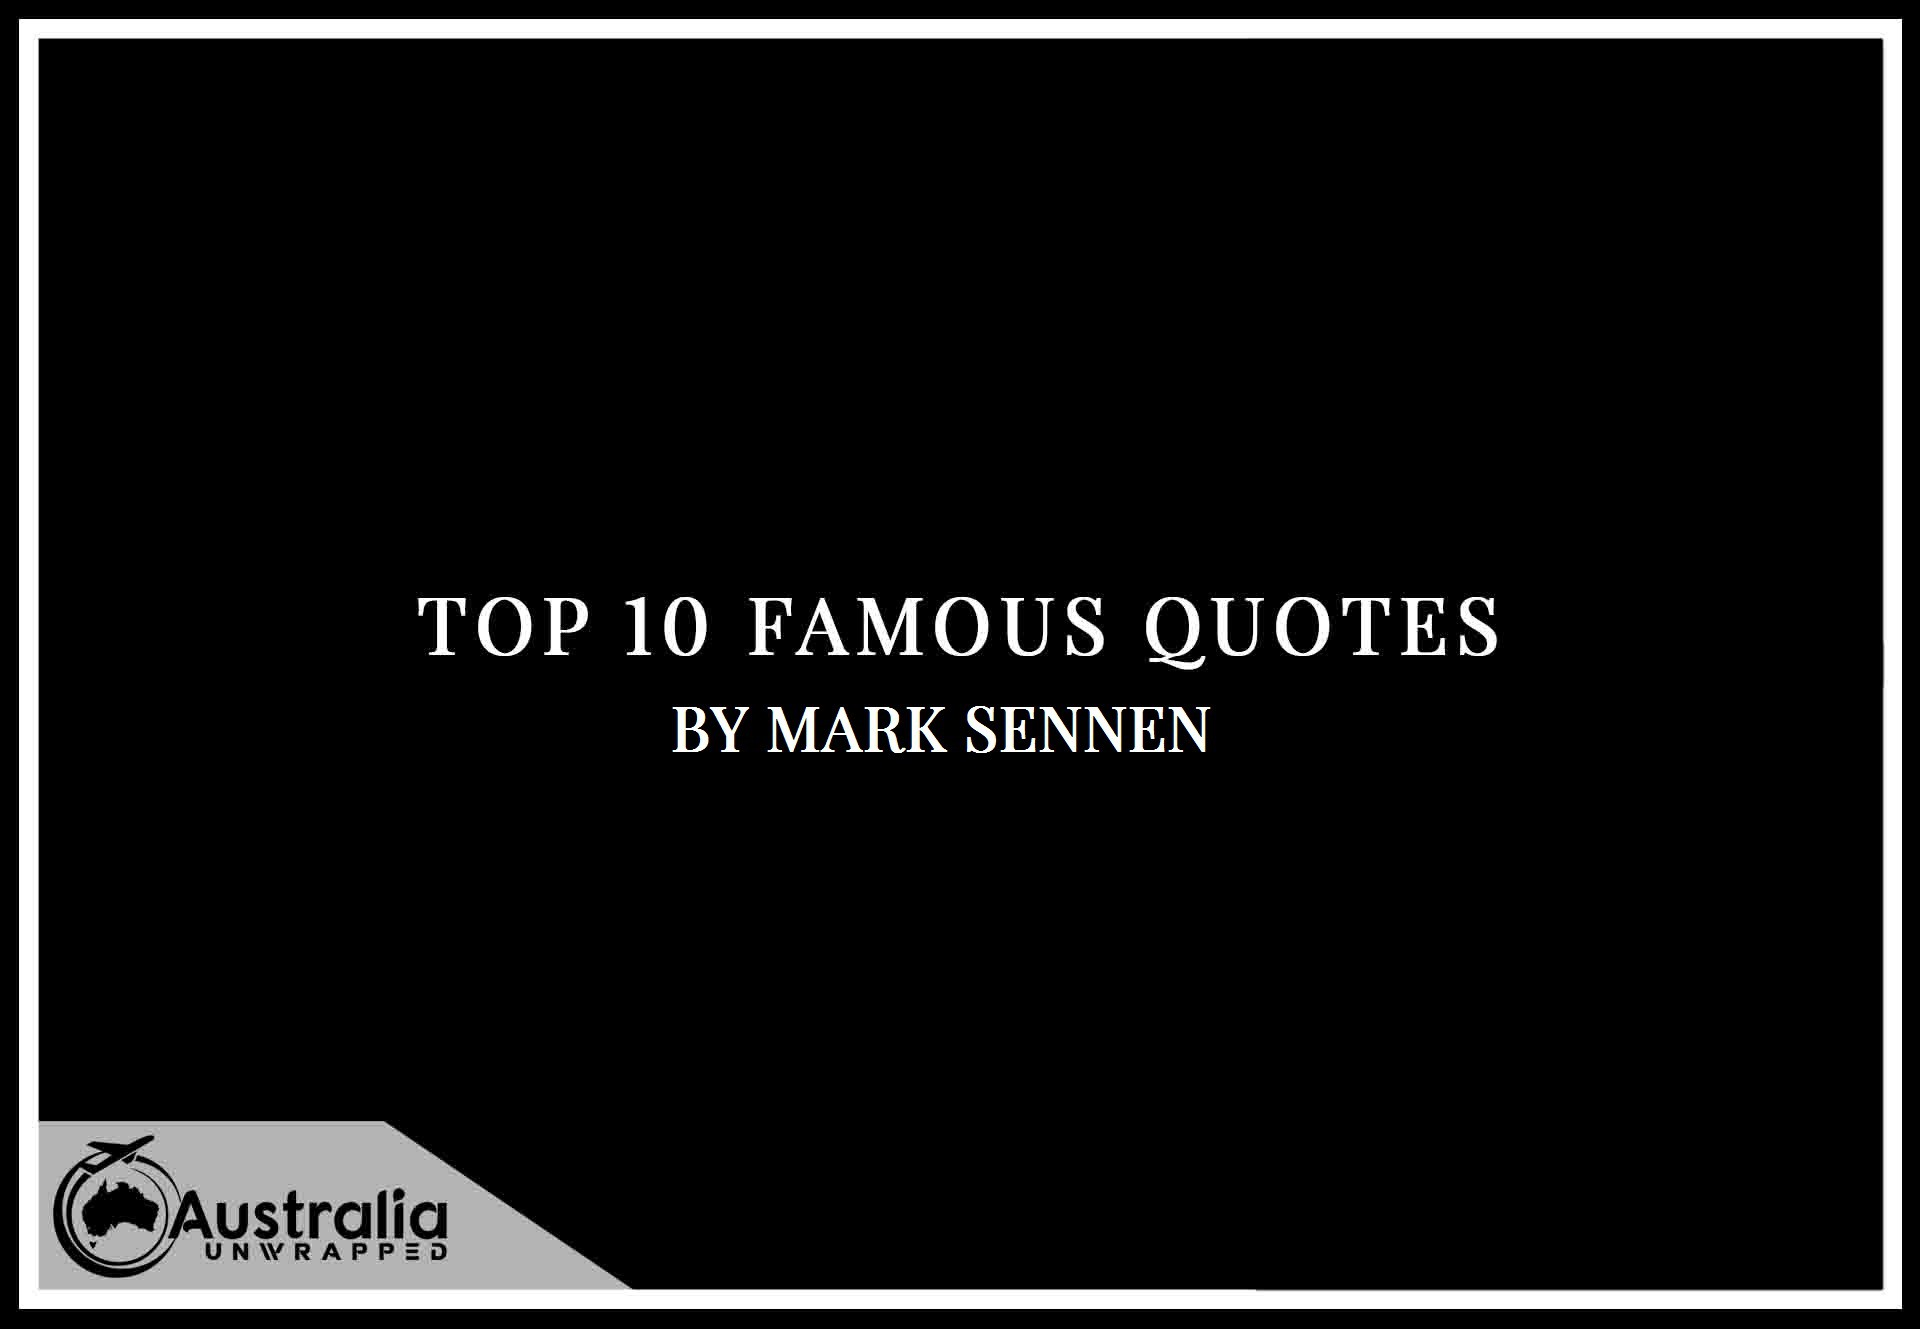 Mark Sennen's Top 10 Popular and Famous Quotes